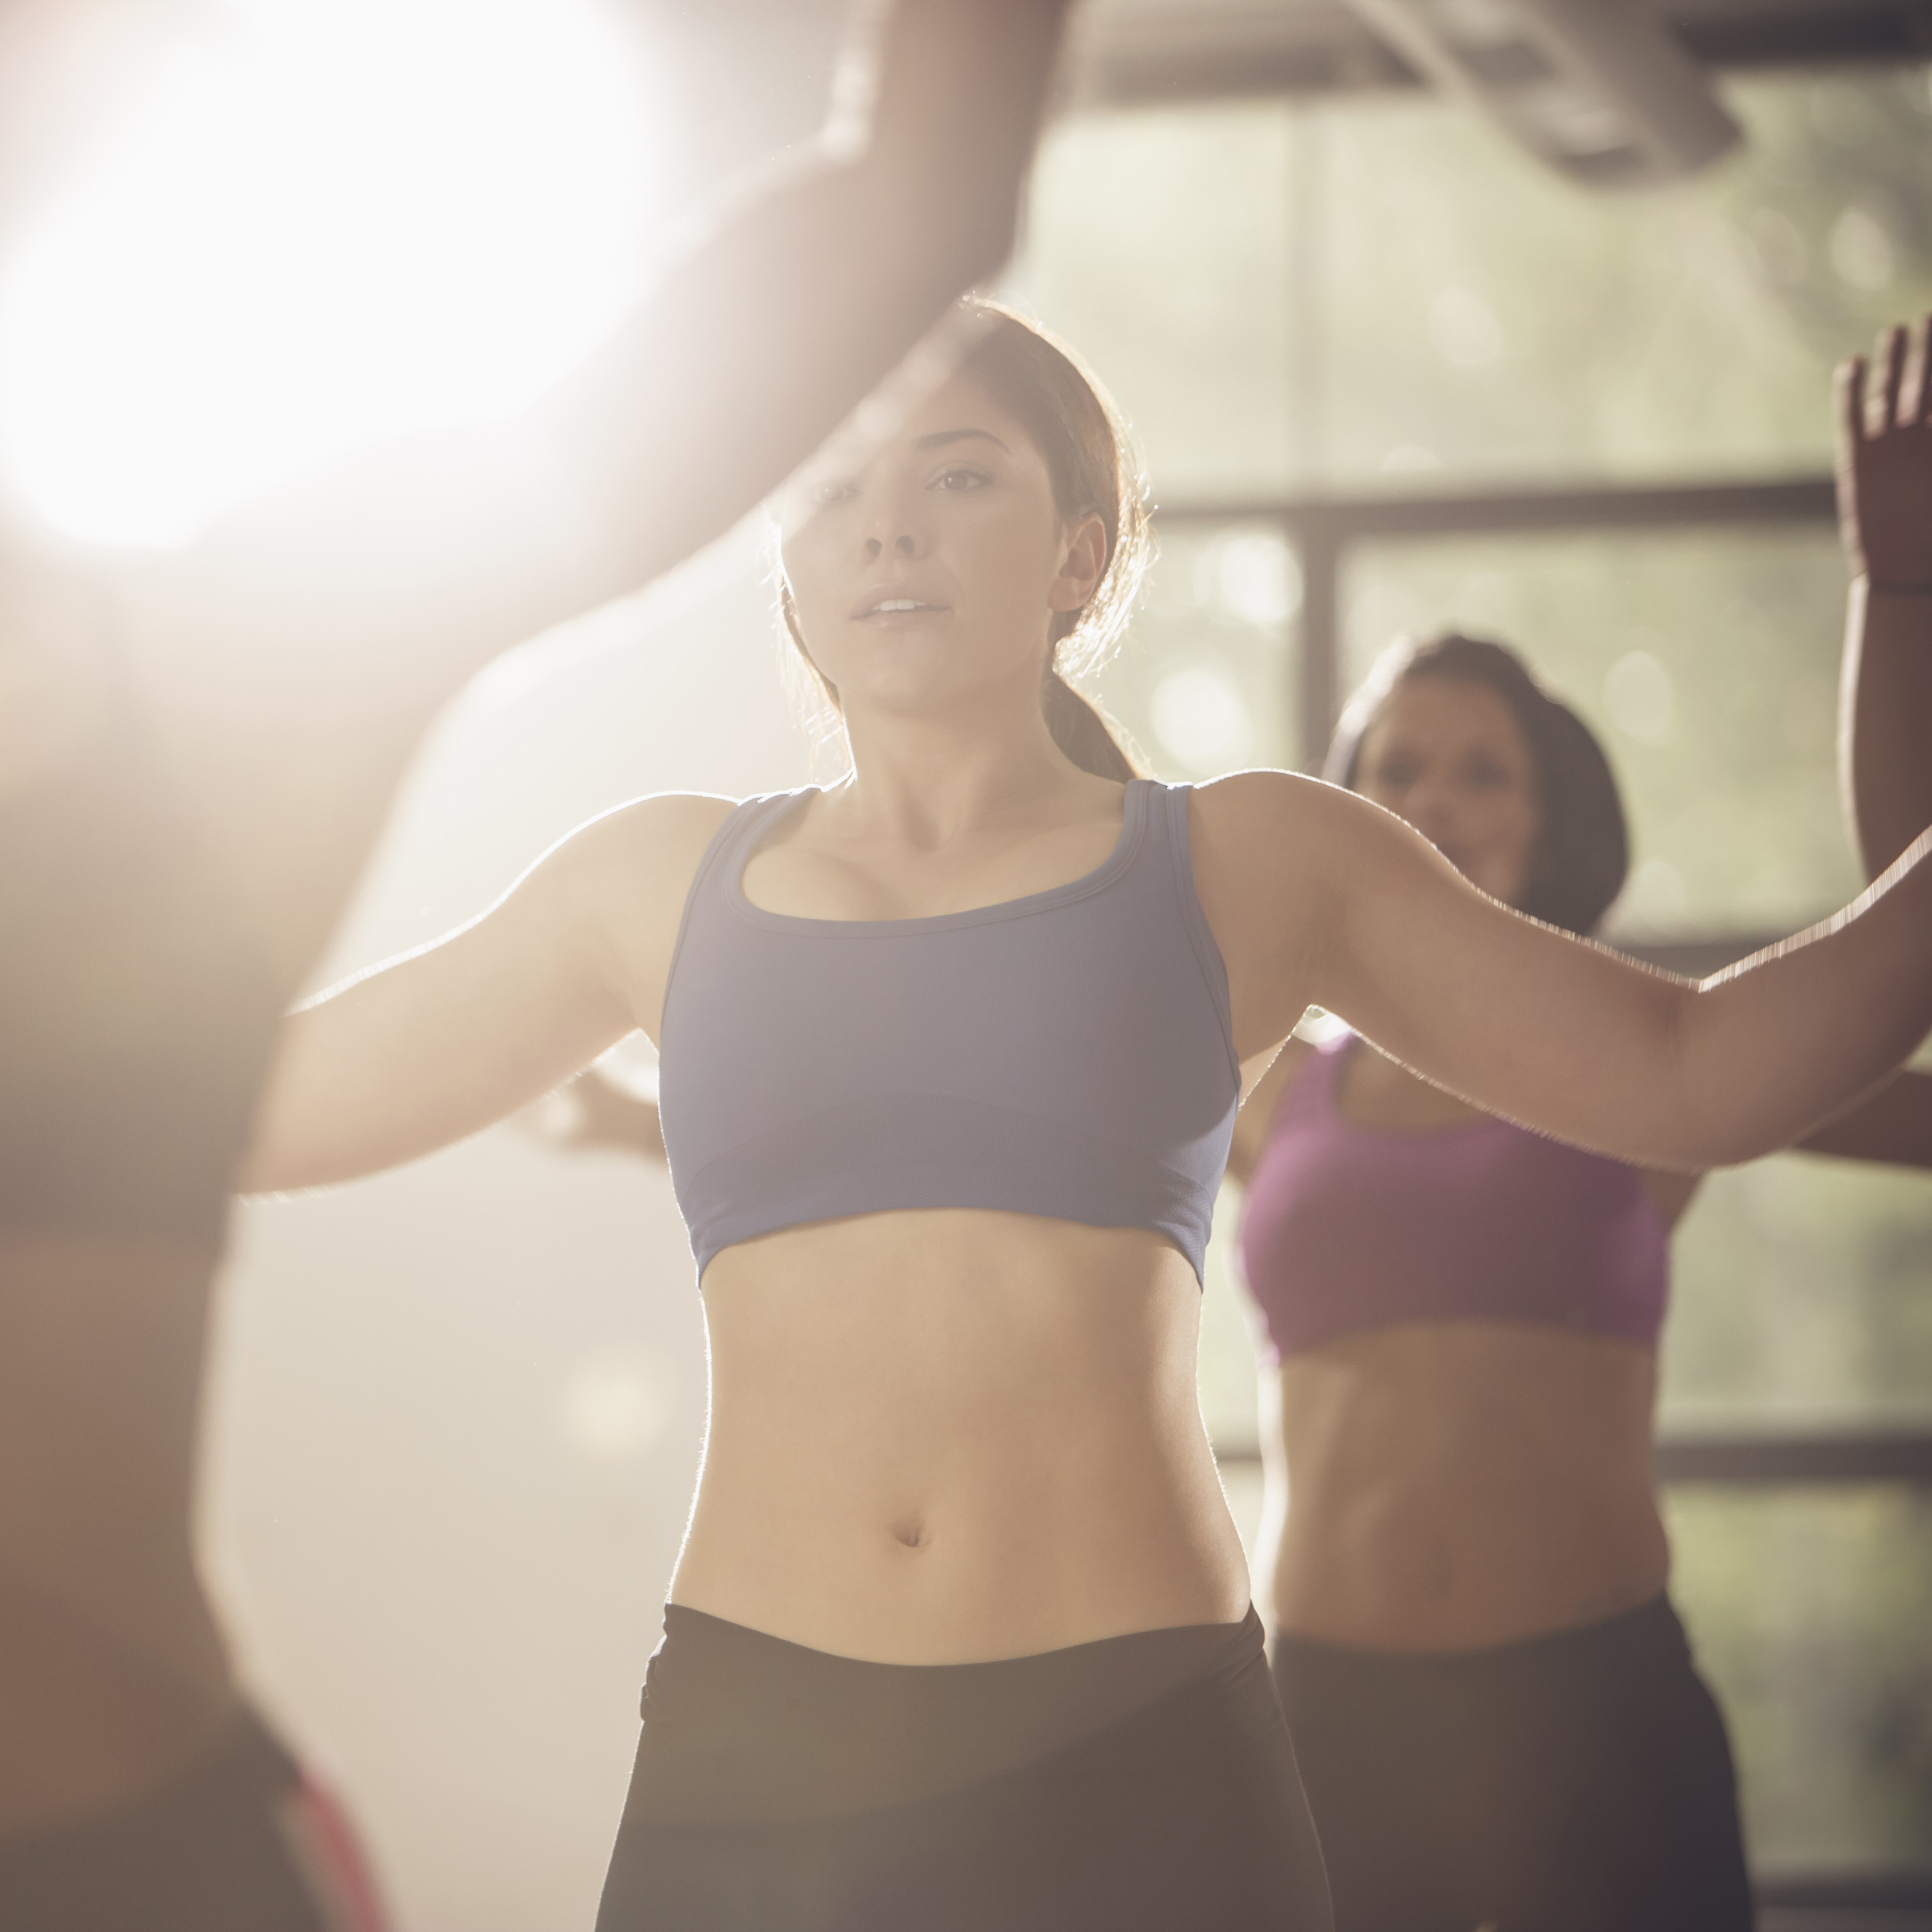 Fitness classes explained: What is HIIT training? - Good Housekeeping